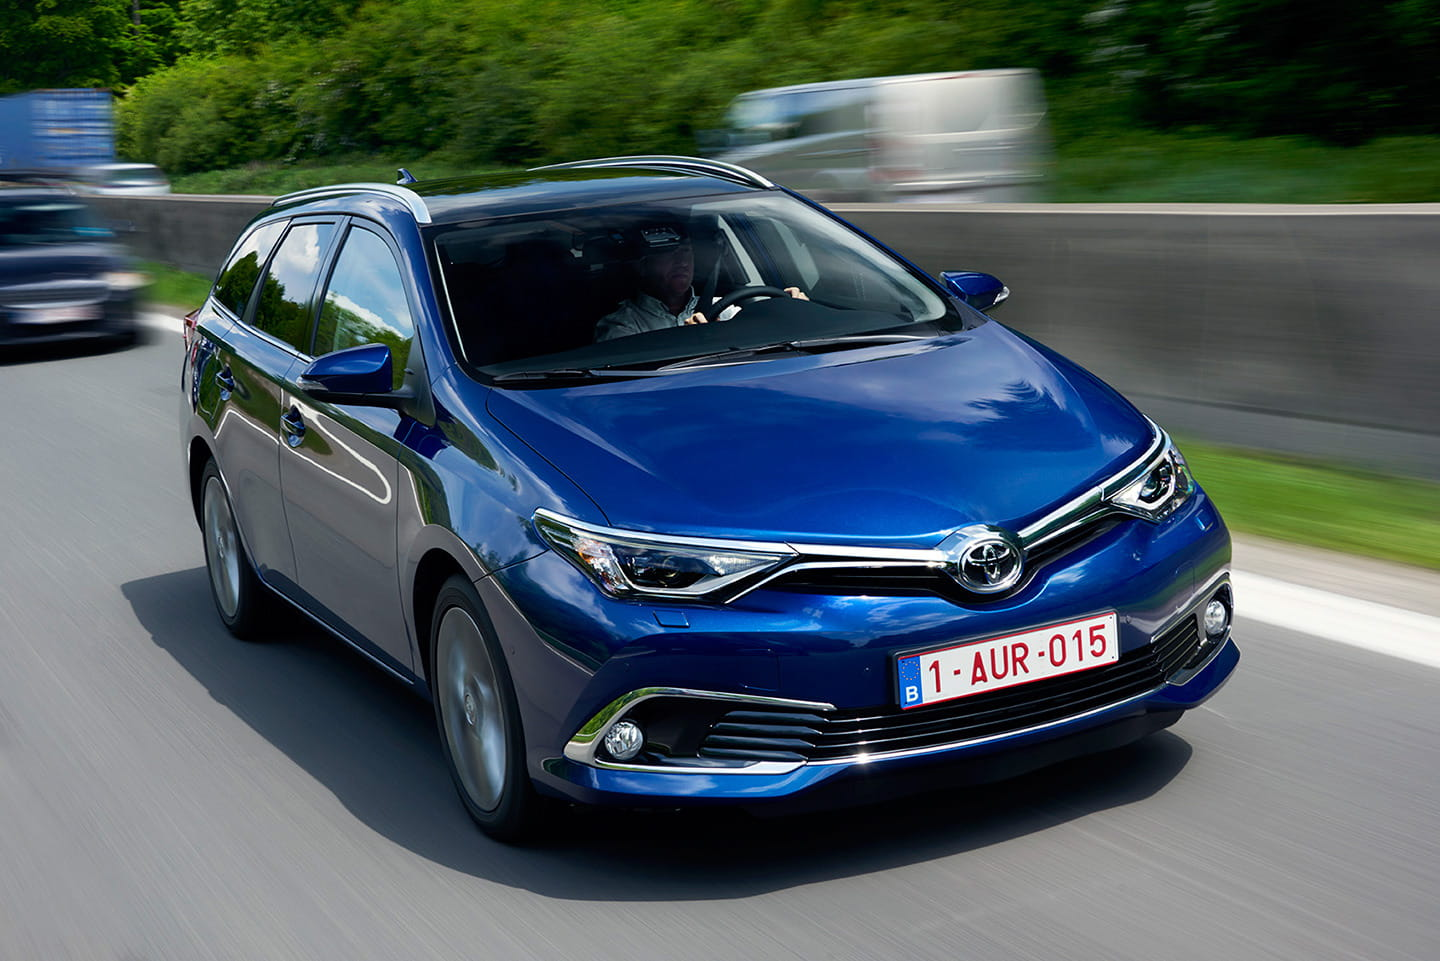 toyota auris y auris touring sports 2015 diariomotor. Black Bedroom Furniture Sets. Home Design Ideas